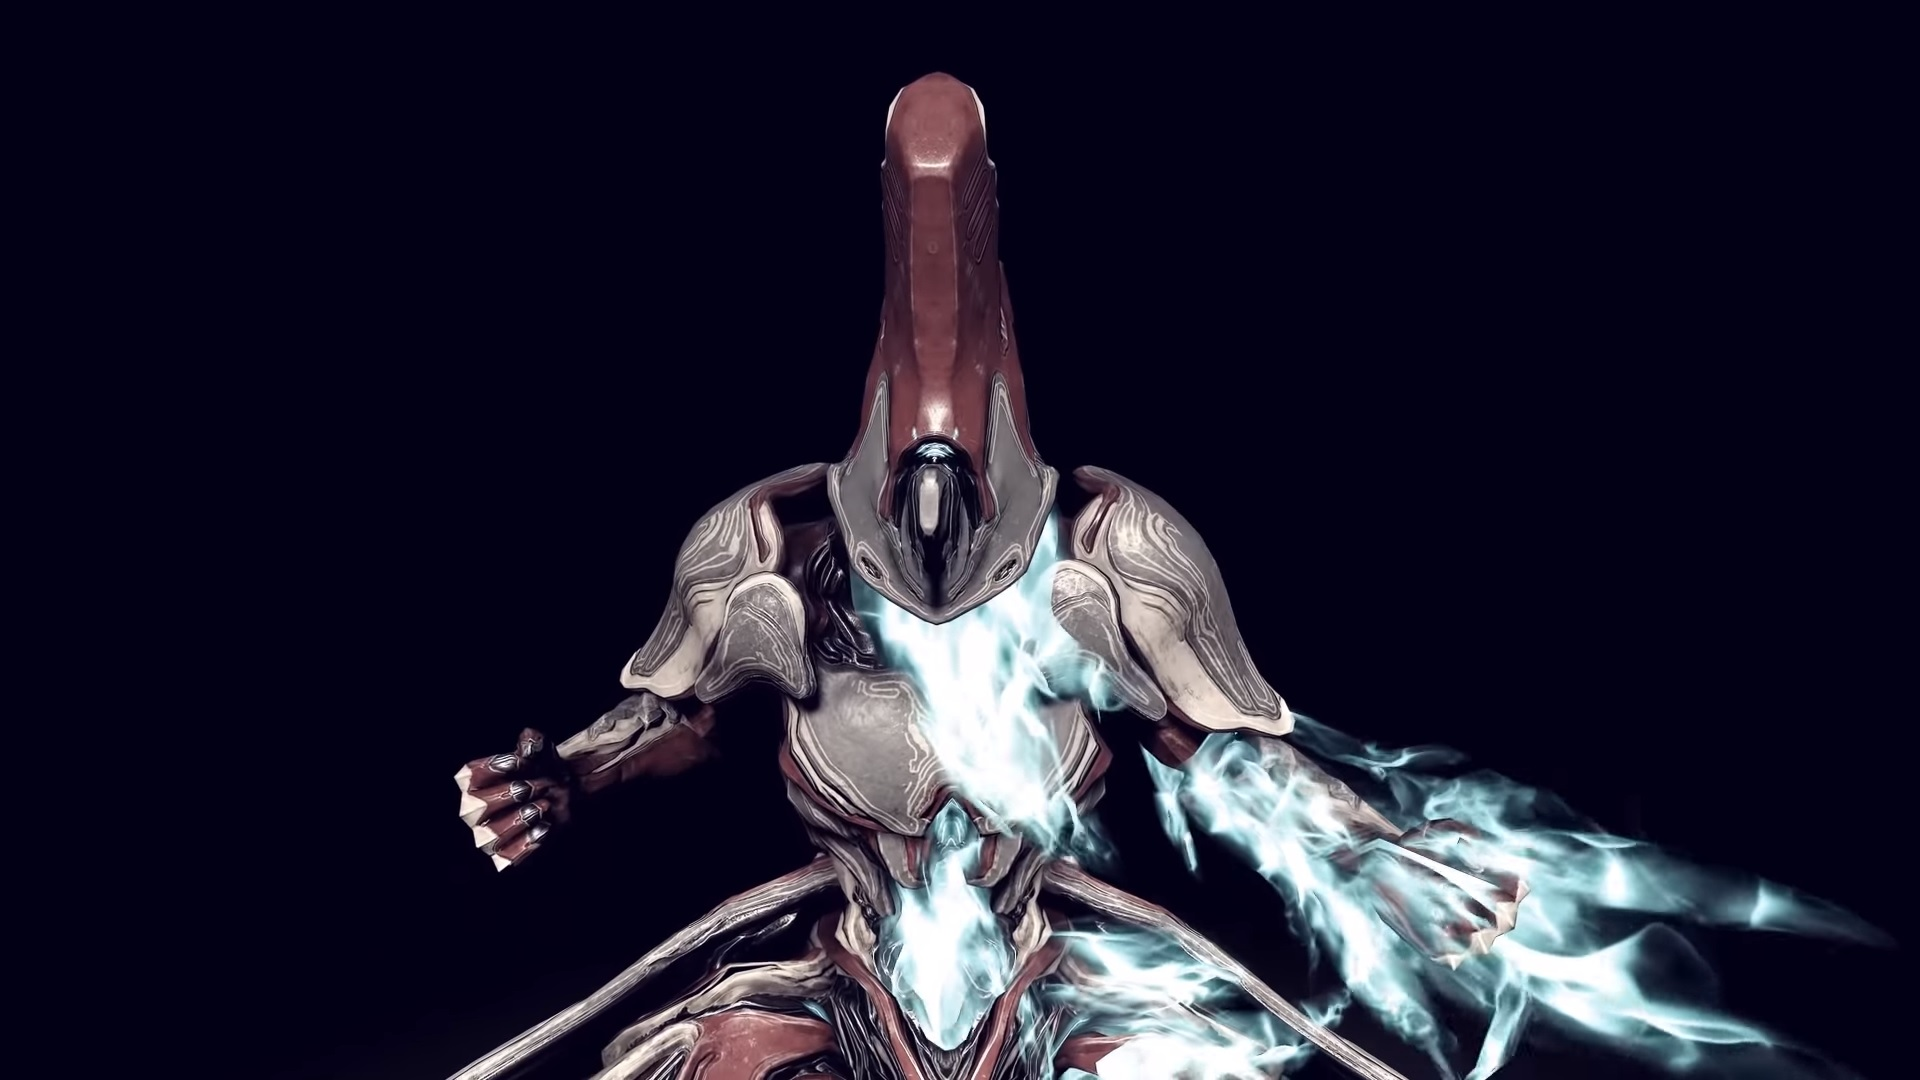 Warframe's newest frame - the Revenant